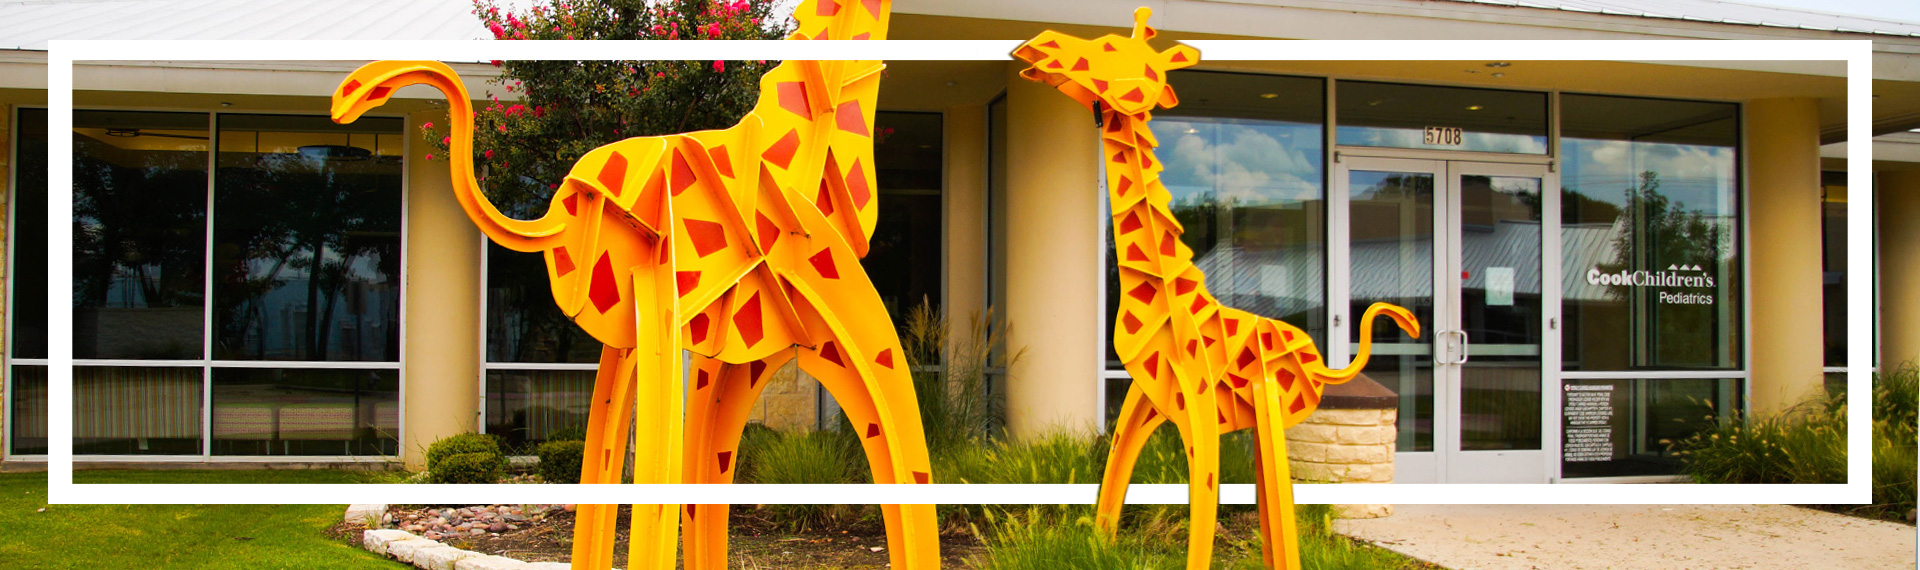 Exterior of clinic showing giraffe sculptures